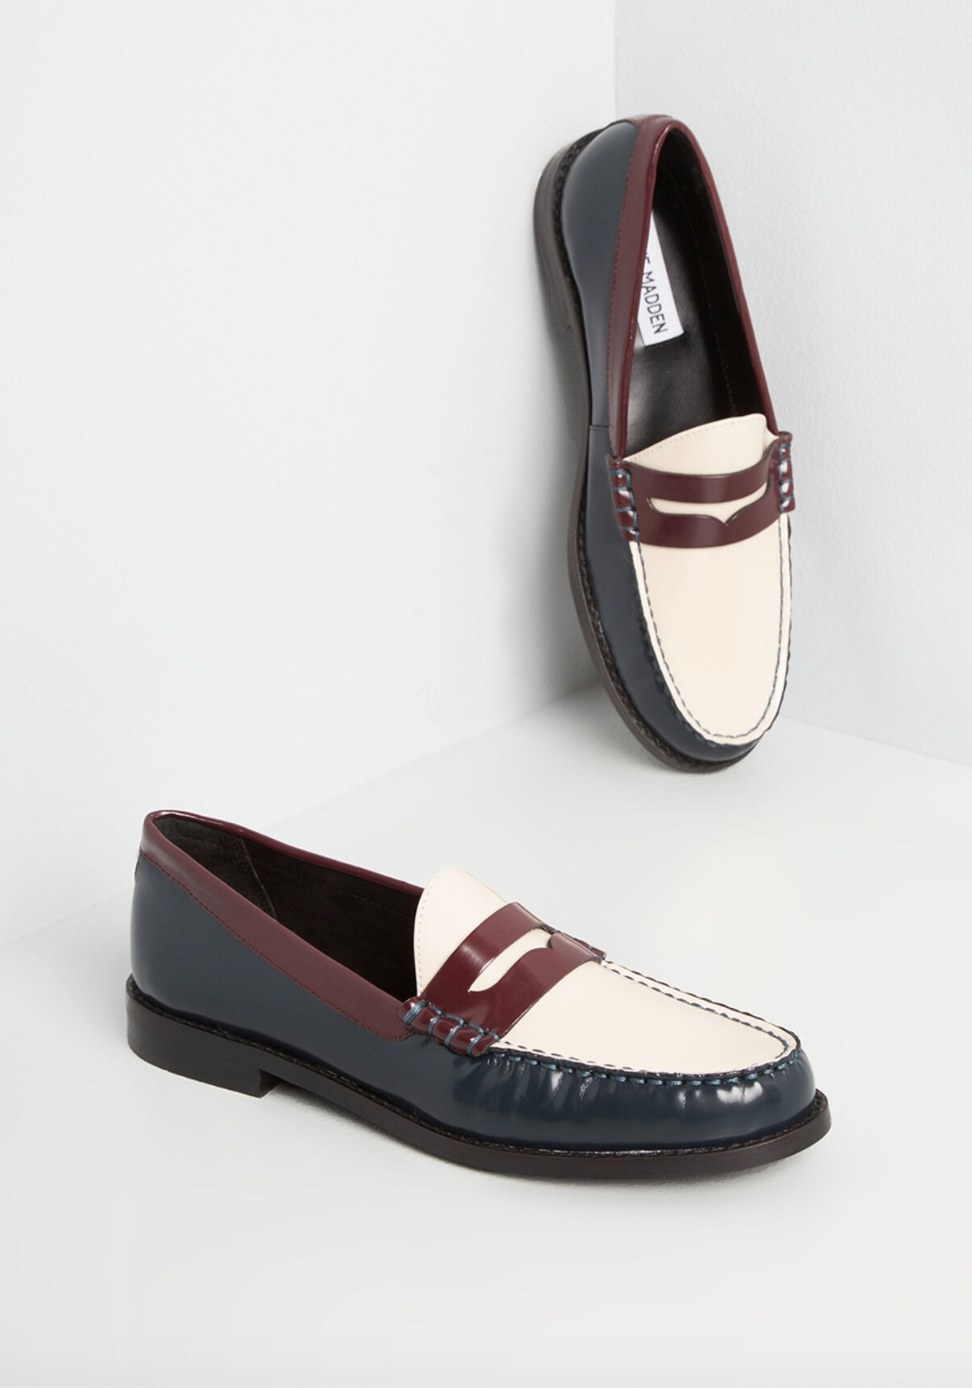 The penny loafers in white and burgundy